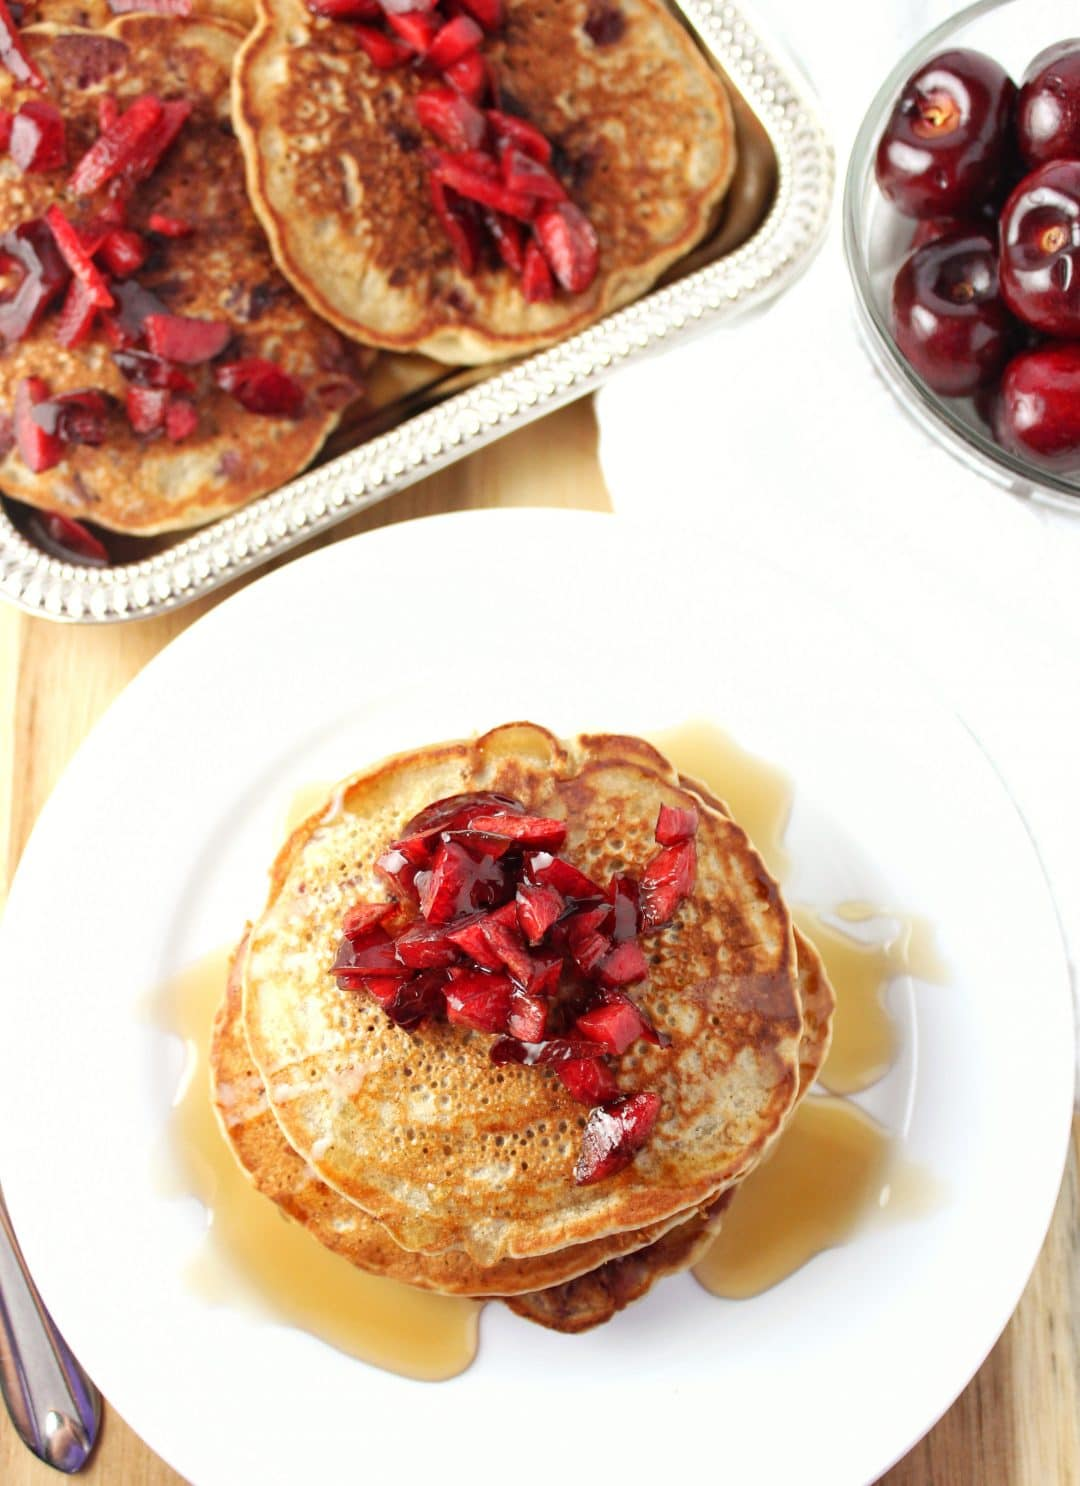 Vegan Cherry Pancakes - These pancakes are easy to make and are the perfect recipe to use when fresh cherries are in season. simplylakita.com #cherry #pancakes #vegan